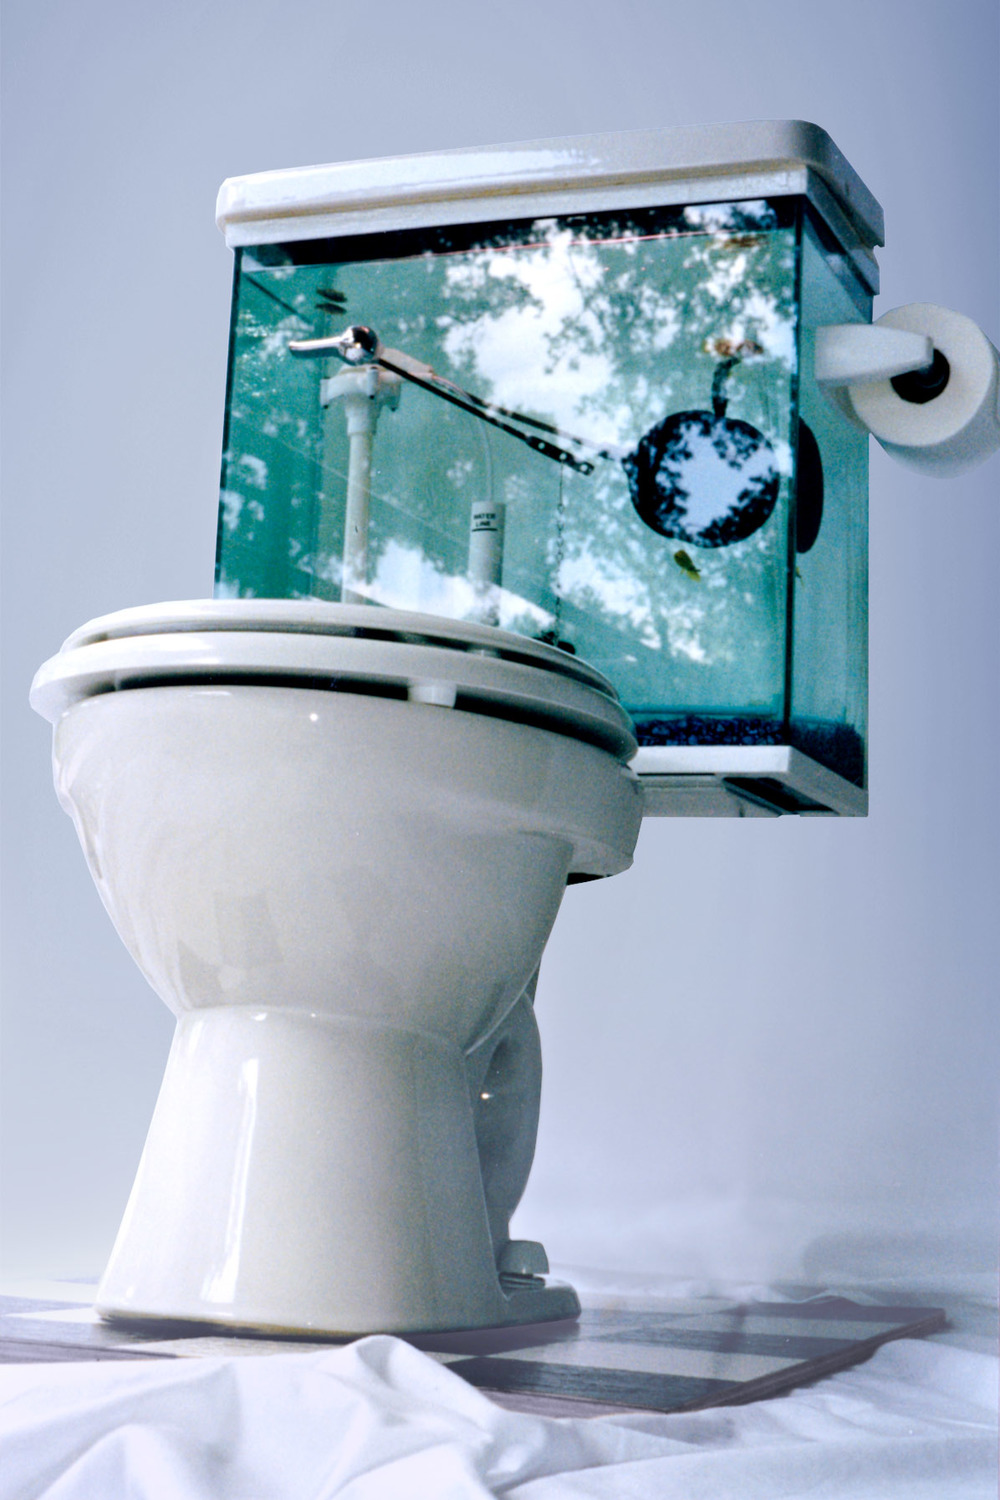 Fish tank toilet - Inside The Tank Is Filled With Real Toilet Parts Plus An Aerator Which Makes The Flapper Move Up And Down All The Fish Food And Supplies Are Stored In The